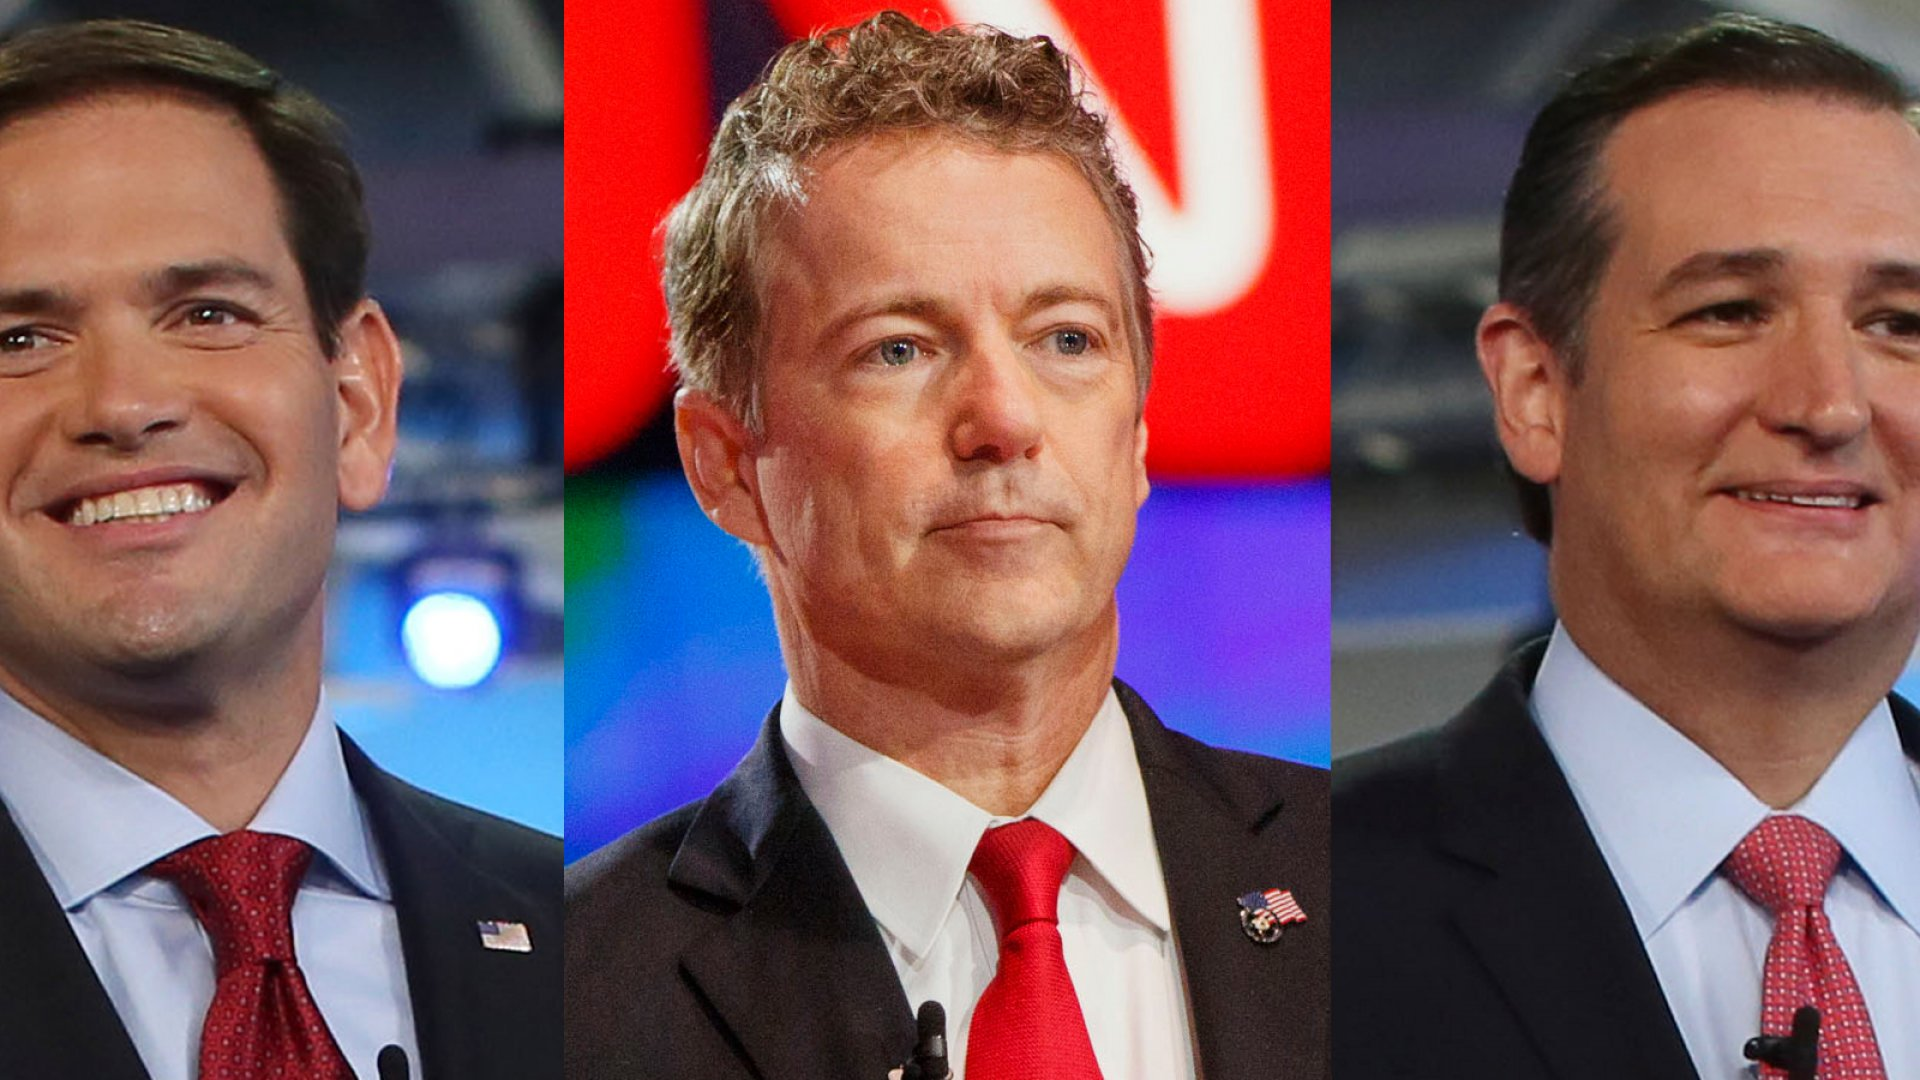 In Last Night's Debate, Three Political Leaders Rose to the Top (Here's Why)